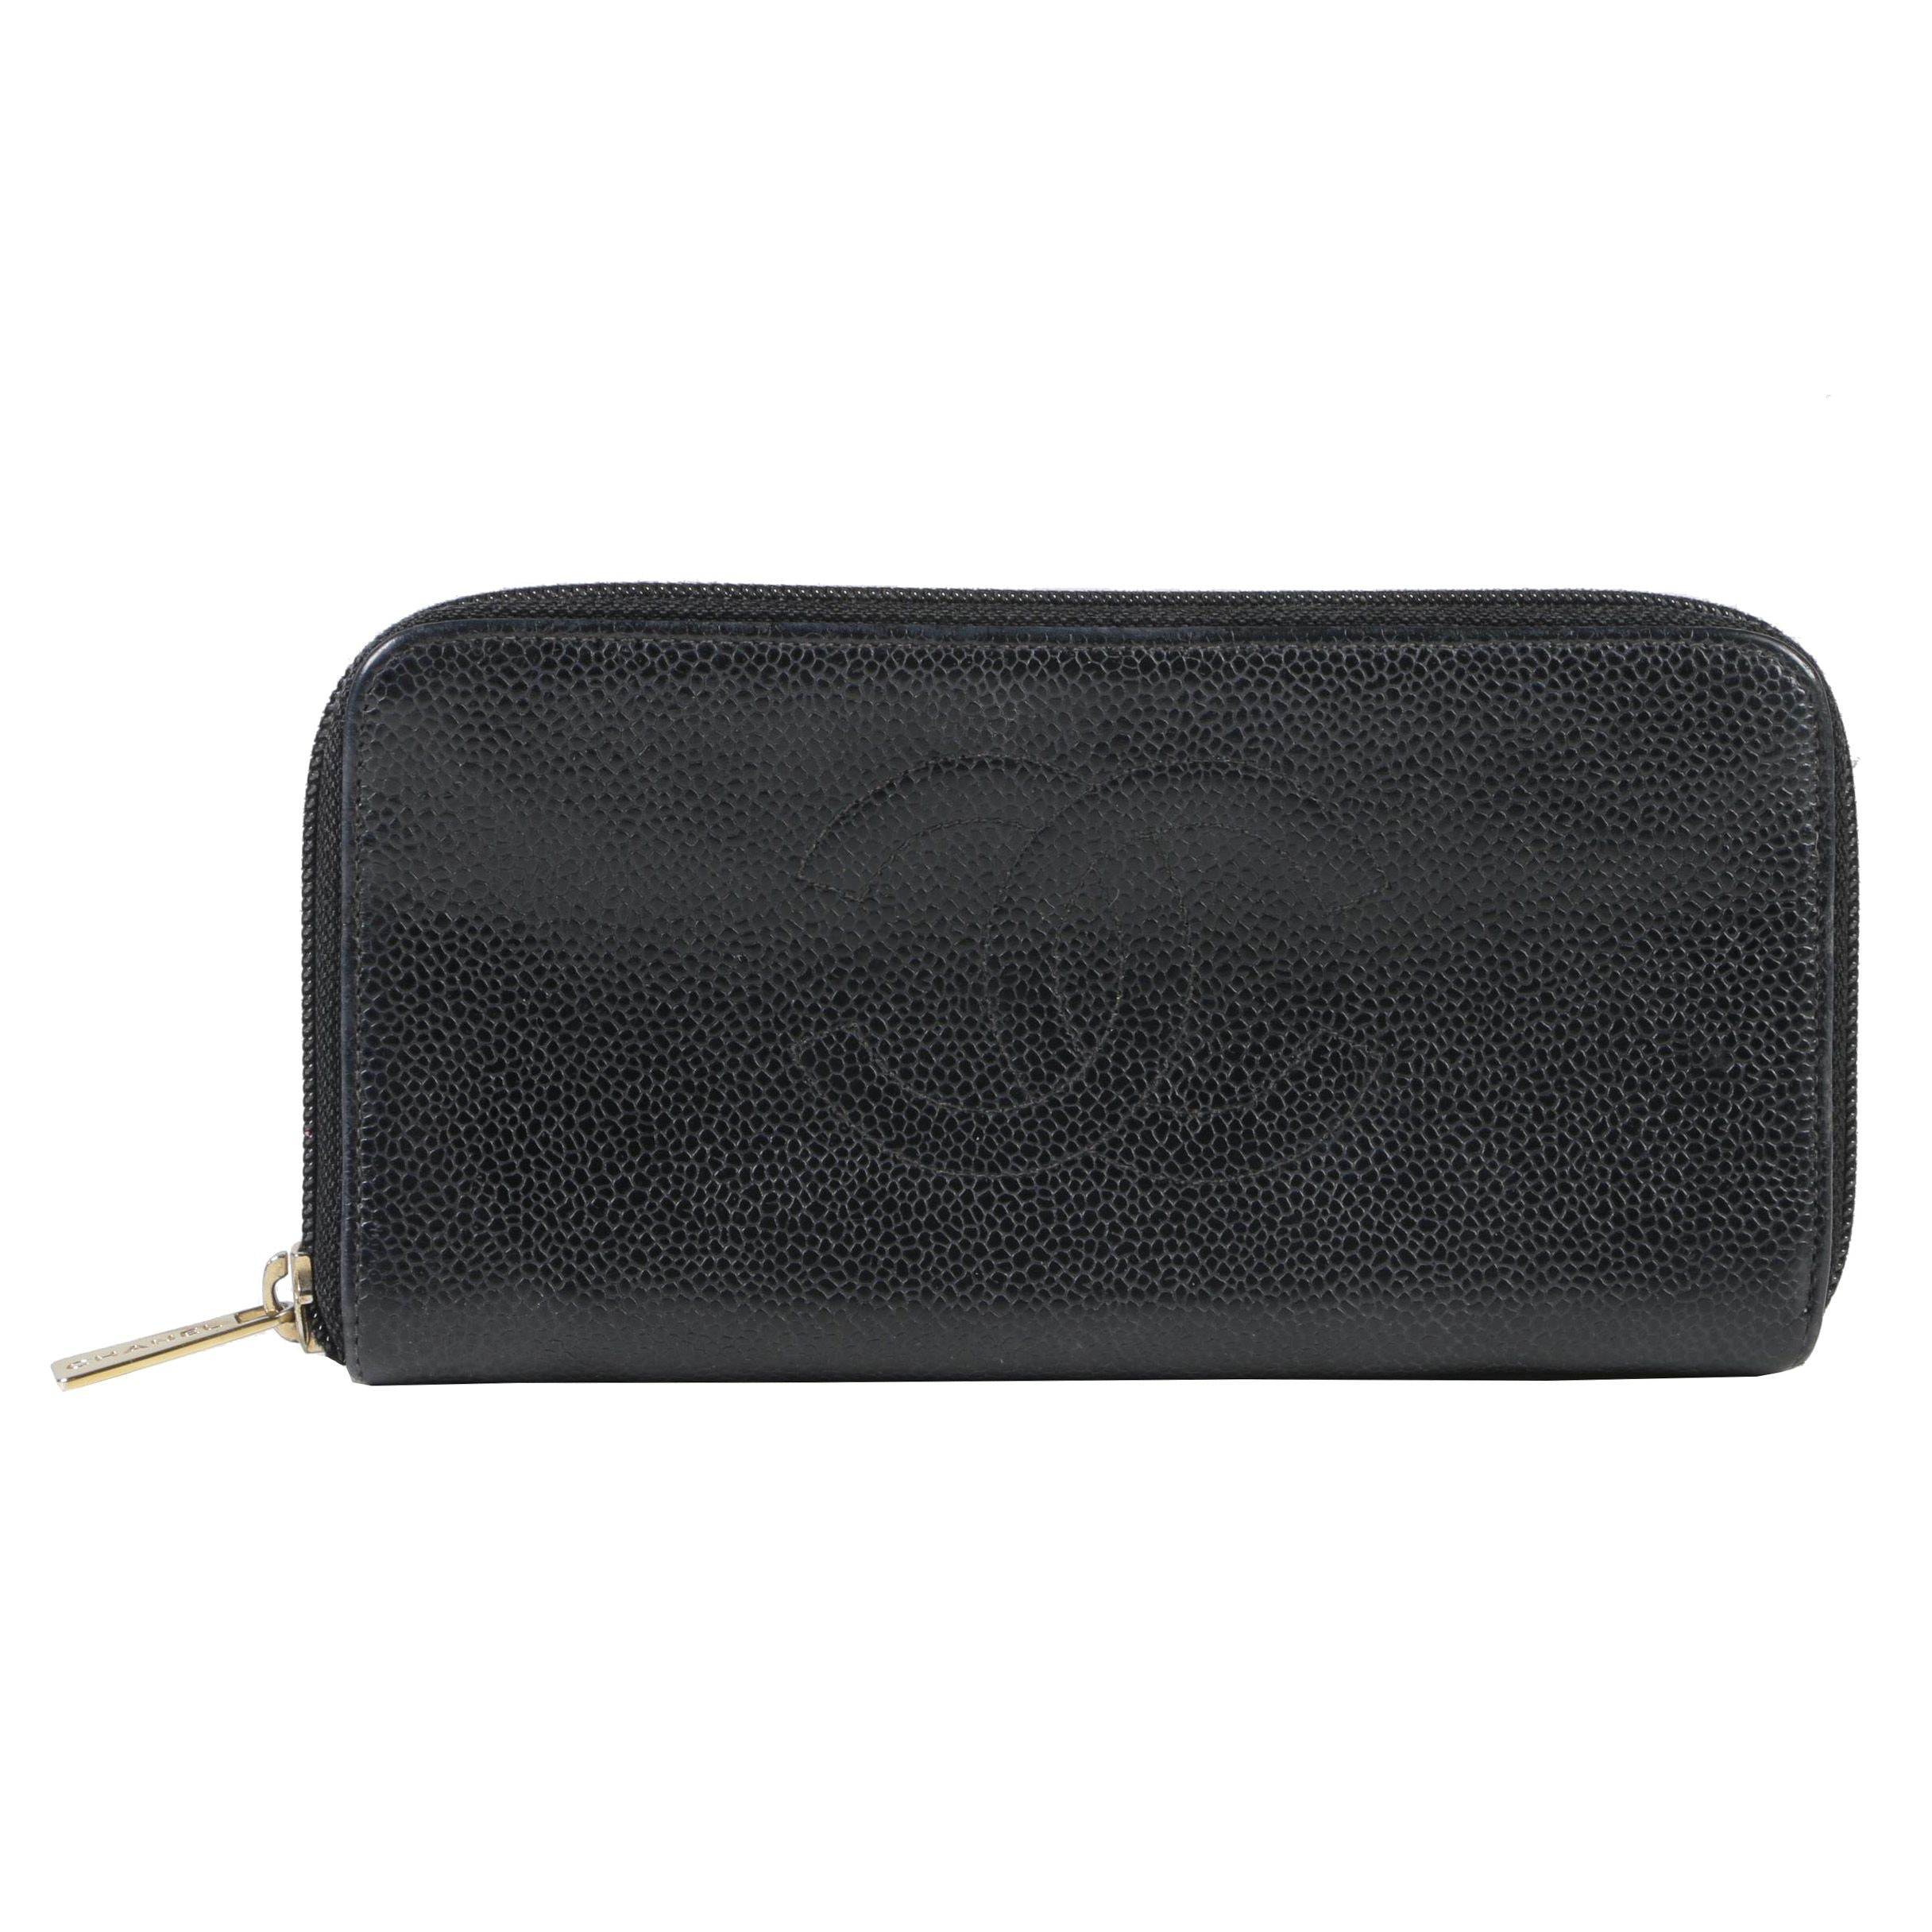 Chanel Black Caviar Leather CC Logo Zip-Around Wallet